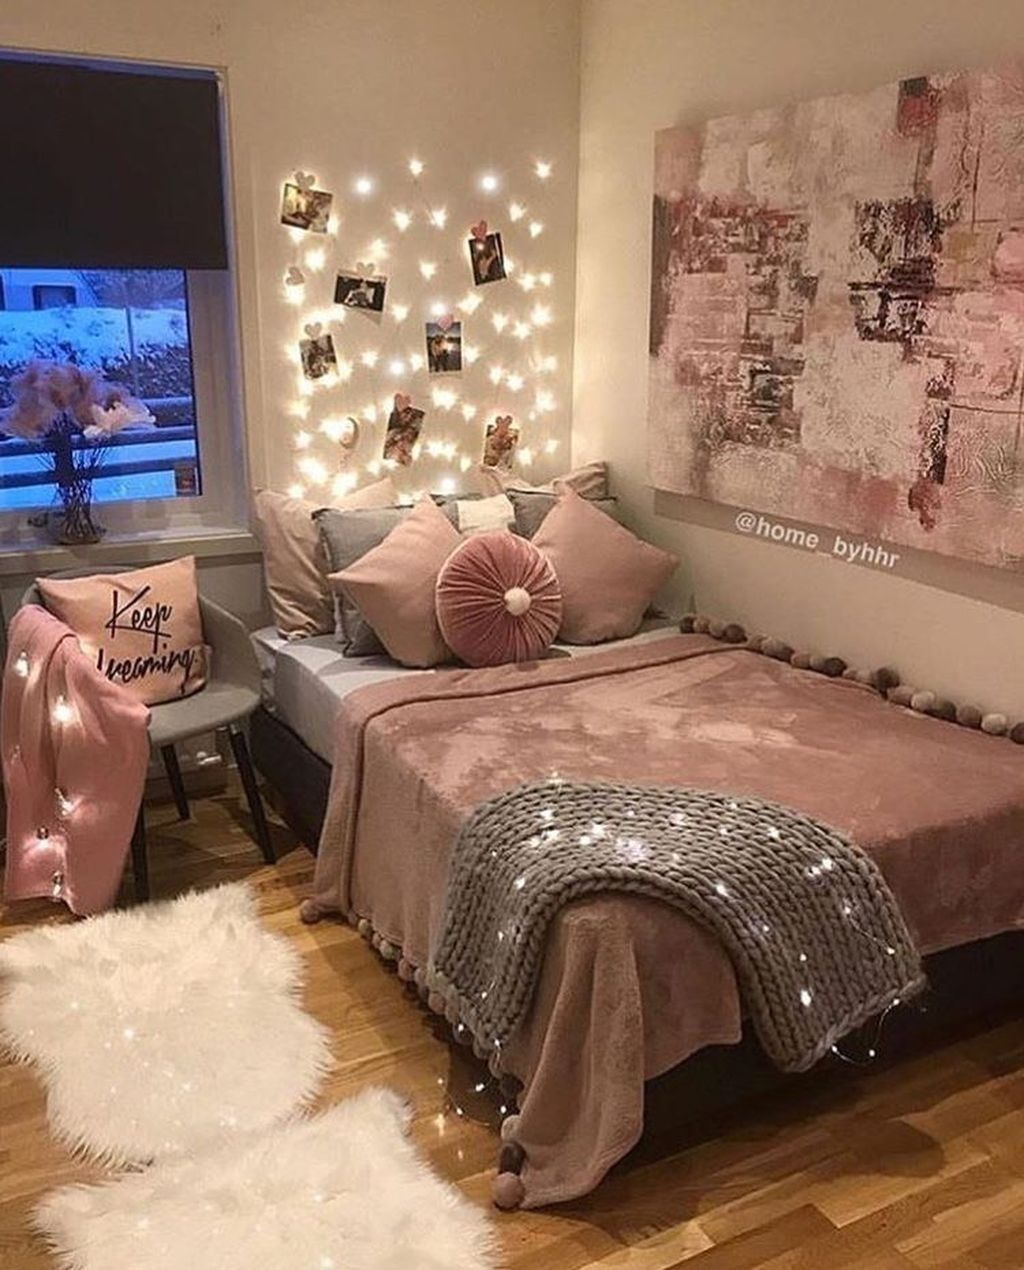 When Your Kid Gets To Be A Teenager That Little Kids Furniture And Bedroom Decor Just Won T Do You Girl Bedroom Decor Pink Bedroom Decor Gold Bedroom Decor